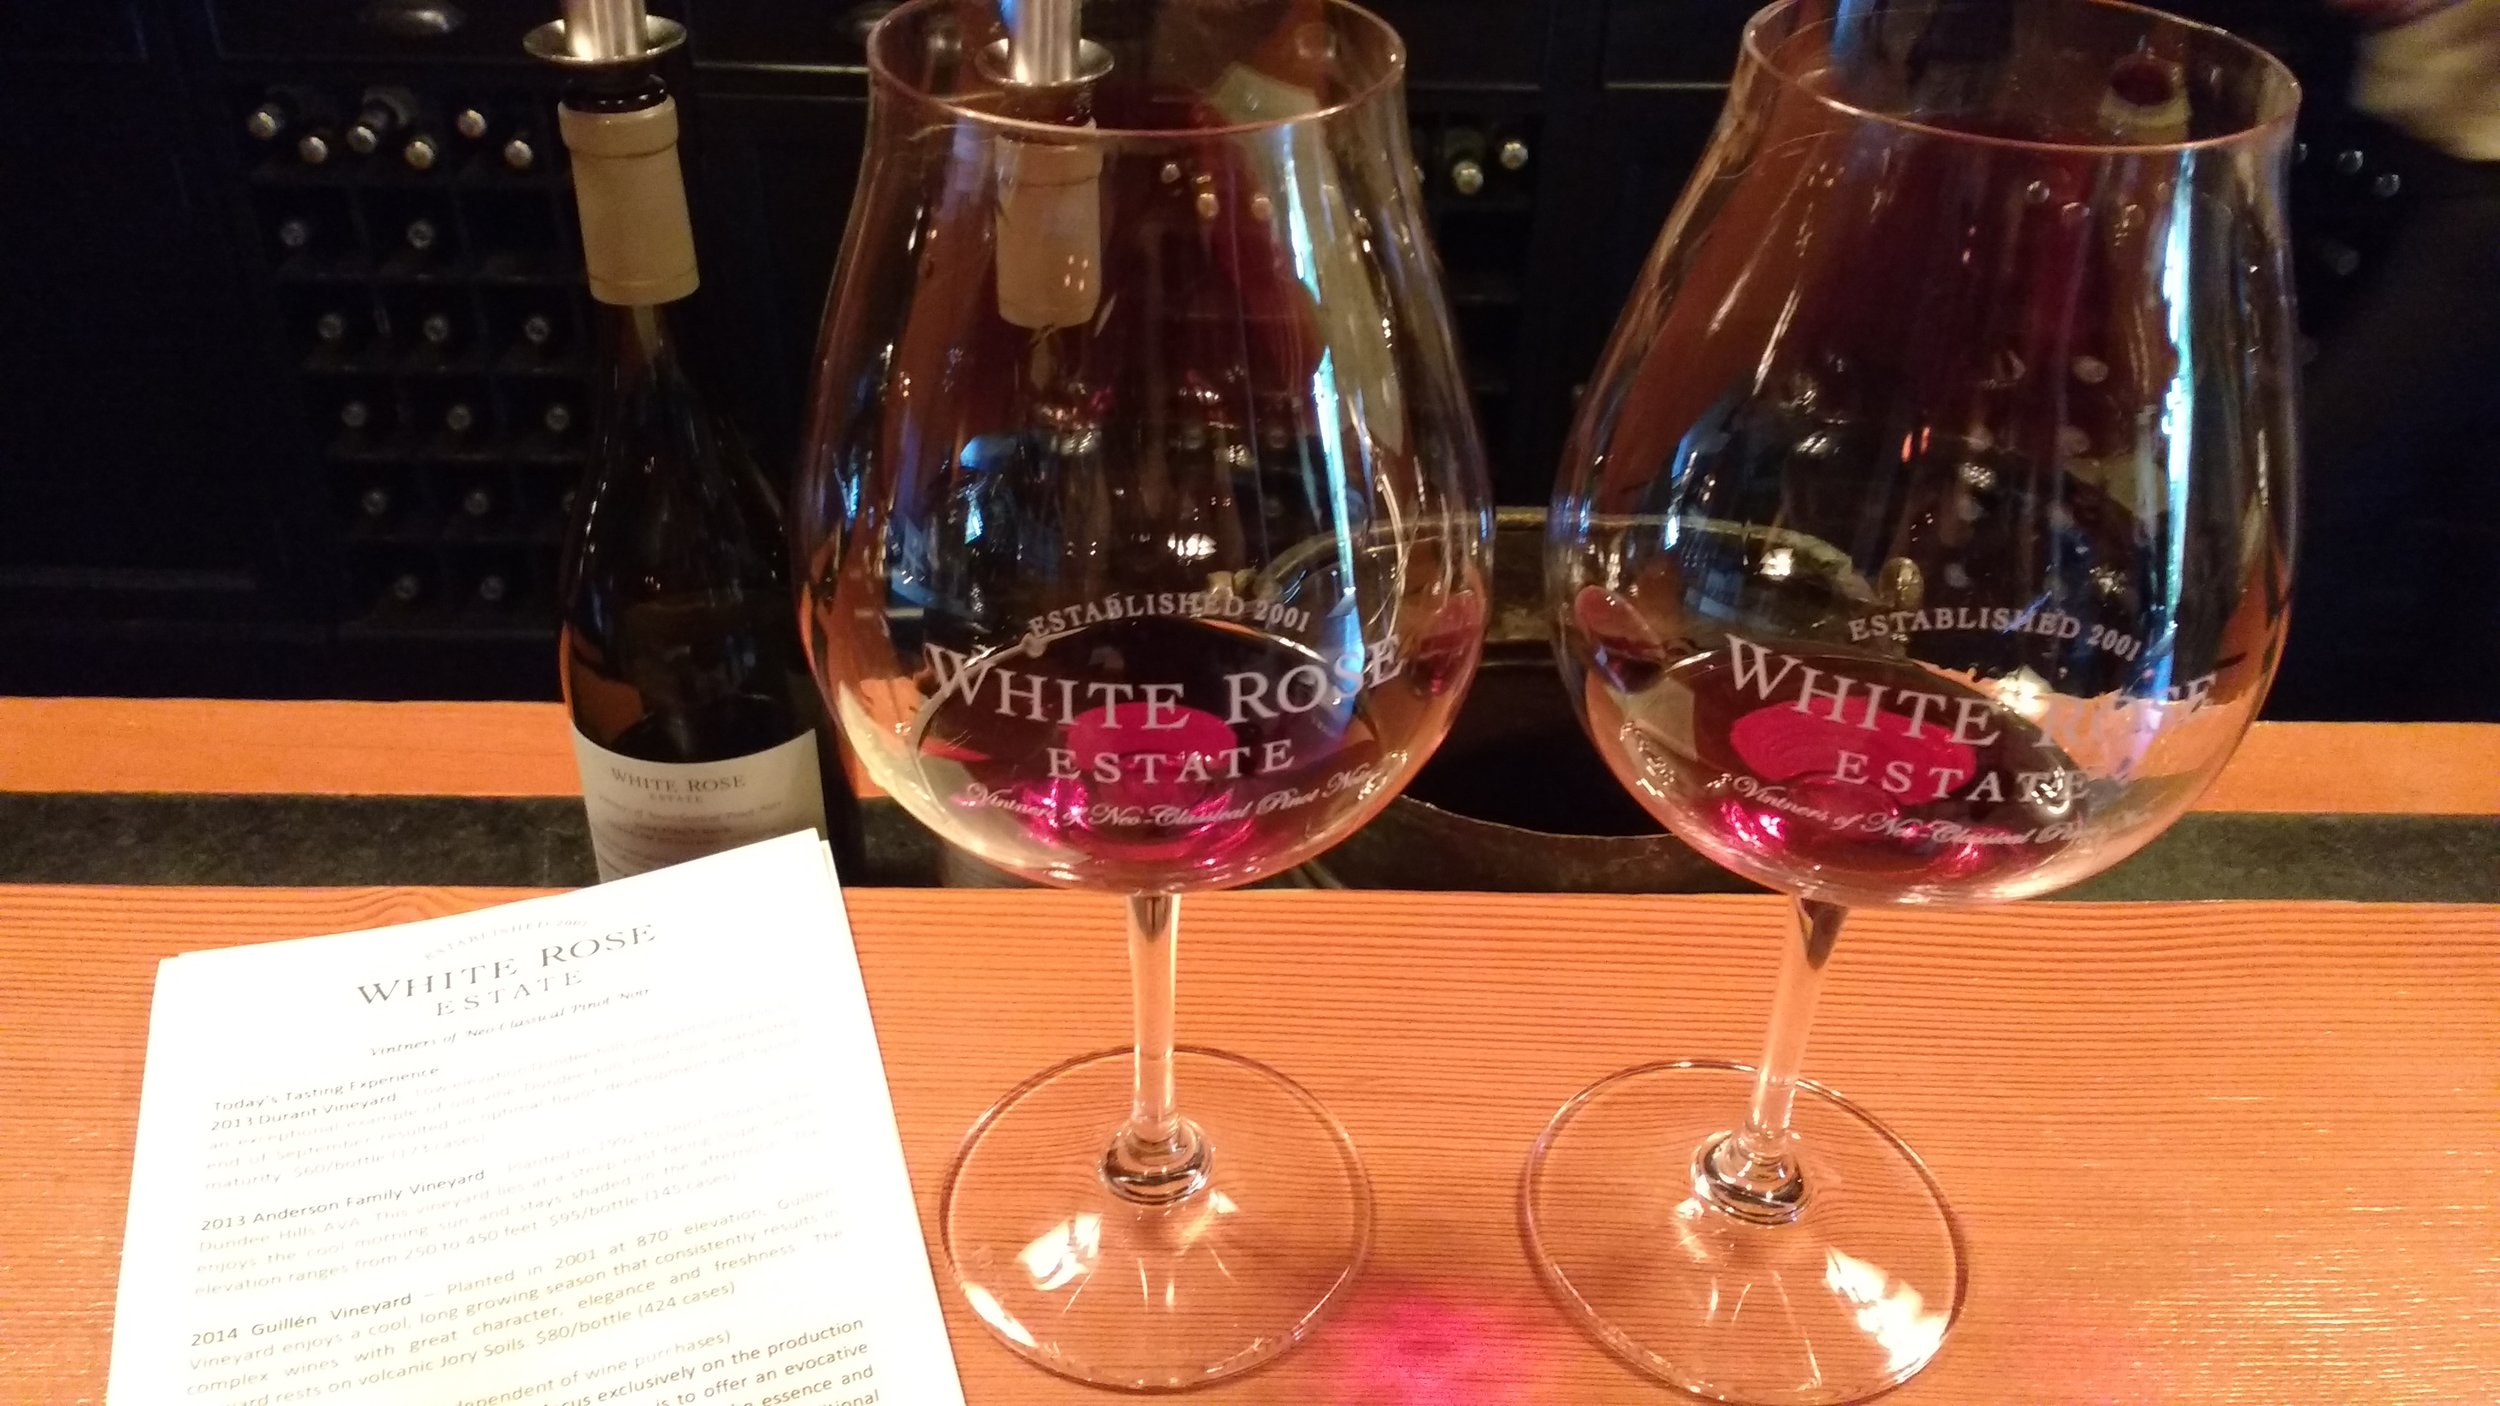 A side-by-side tasting of their 2013 Luciole Vineyard Pinot Noir—one with 20 percent stem inclusion and the other with 80 percent—was a unique wine education experience. Viki Eierdam